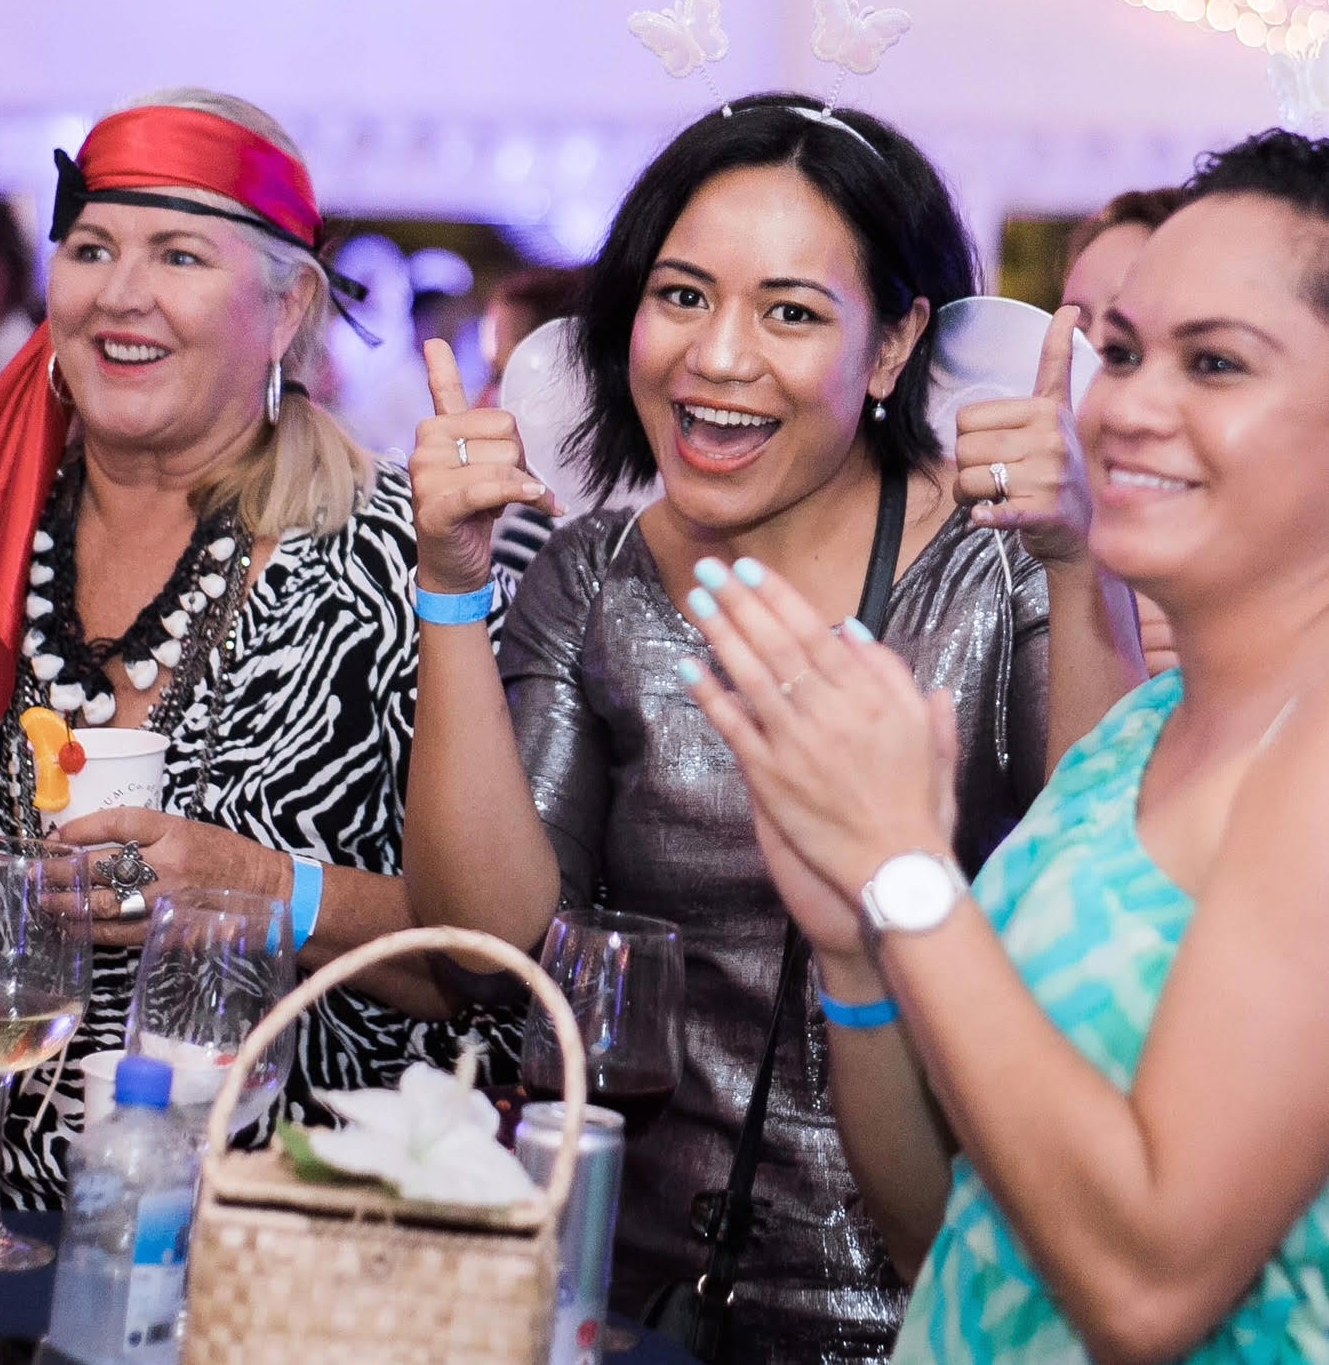 Participants enjoy themselves during the Animals Fiji 'Neverland' themed charity event in Votualevu on September 22, 2018.  Photos: Lia and Stu Photography